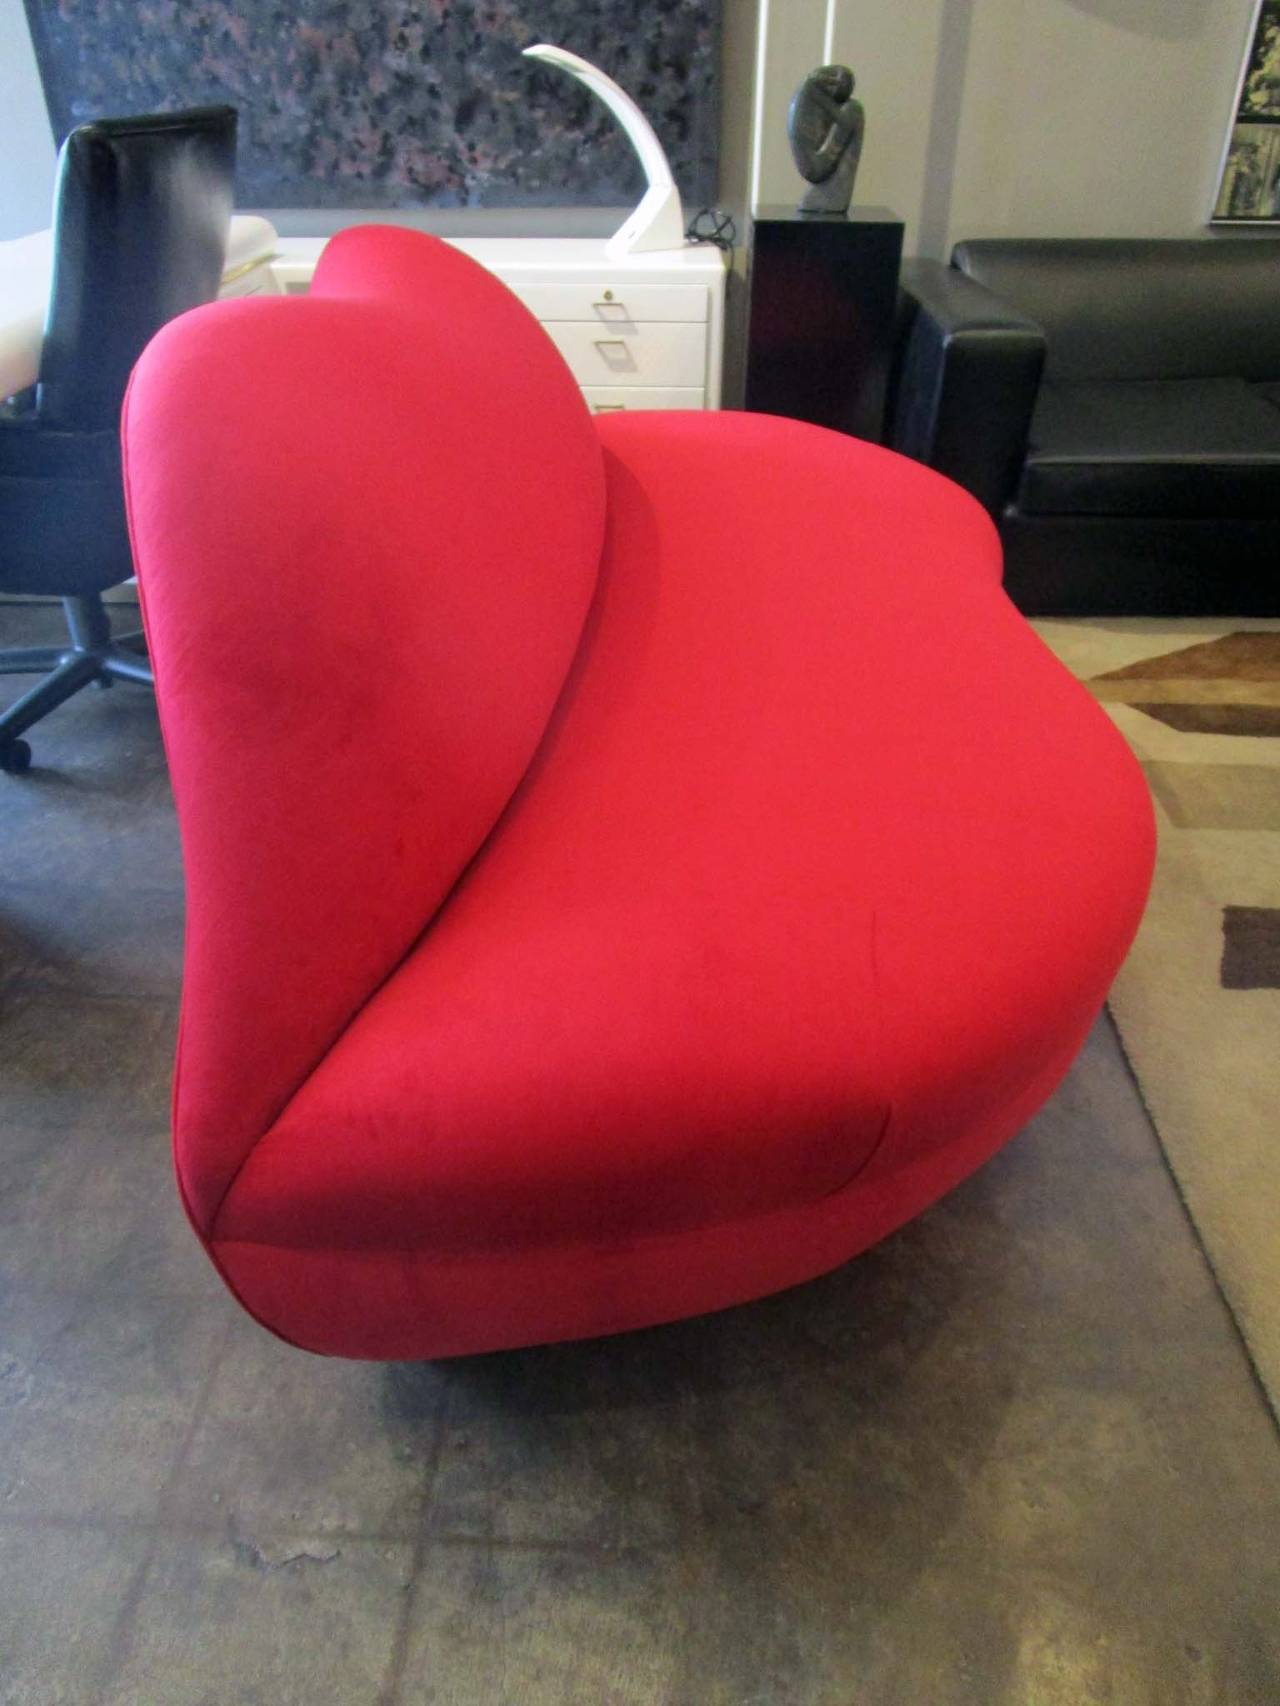 Exceptionnel This Loveseat Made In The Shape Of Lips Has Been Reupholstered In A Bright  Red Chenille